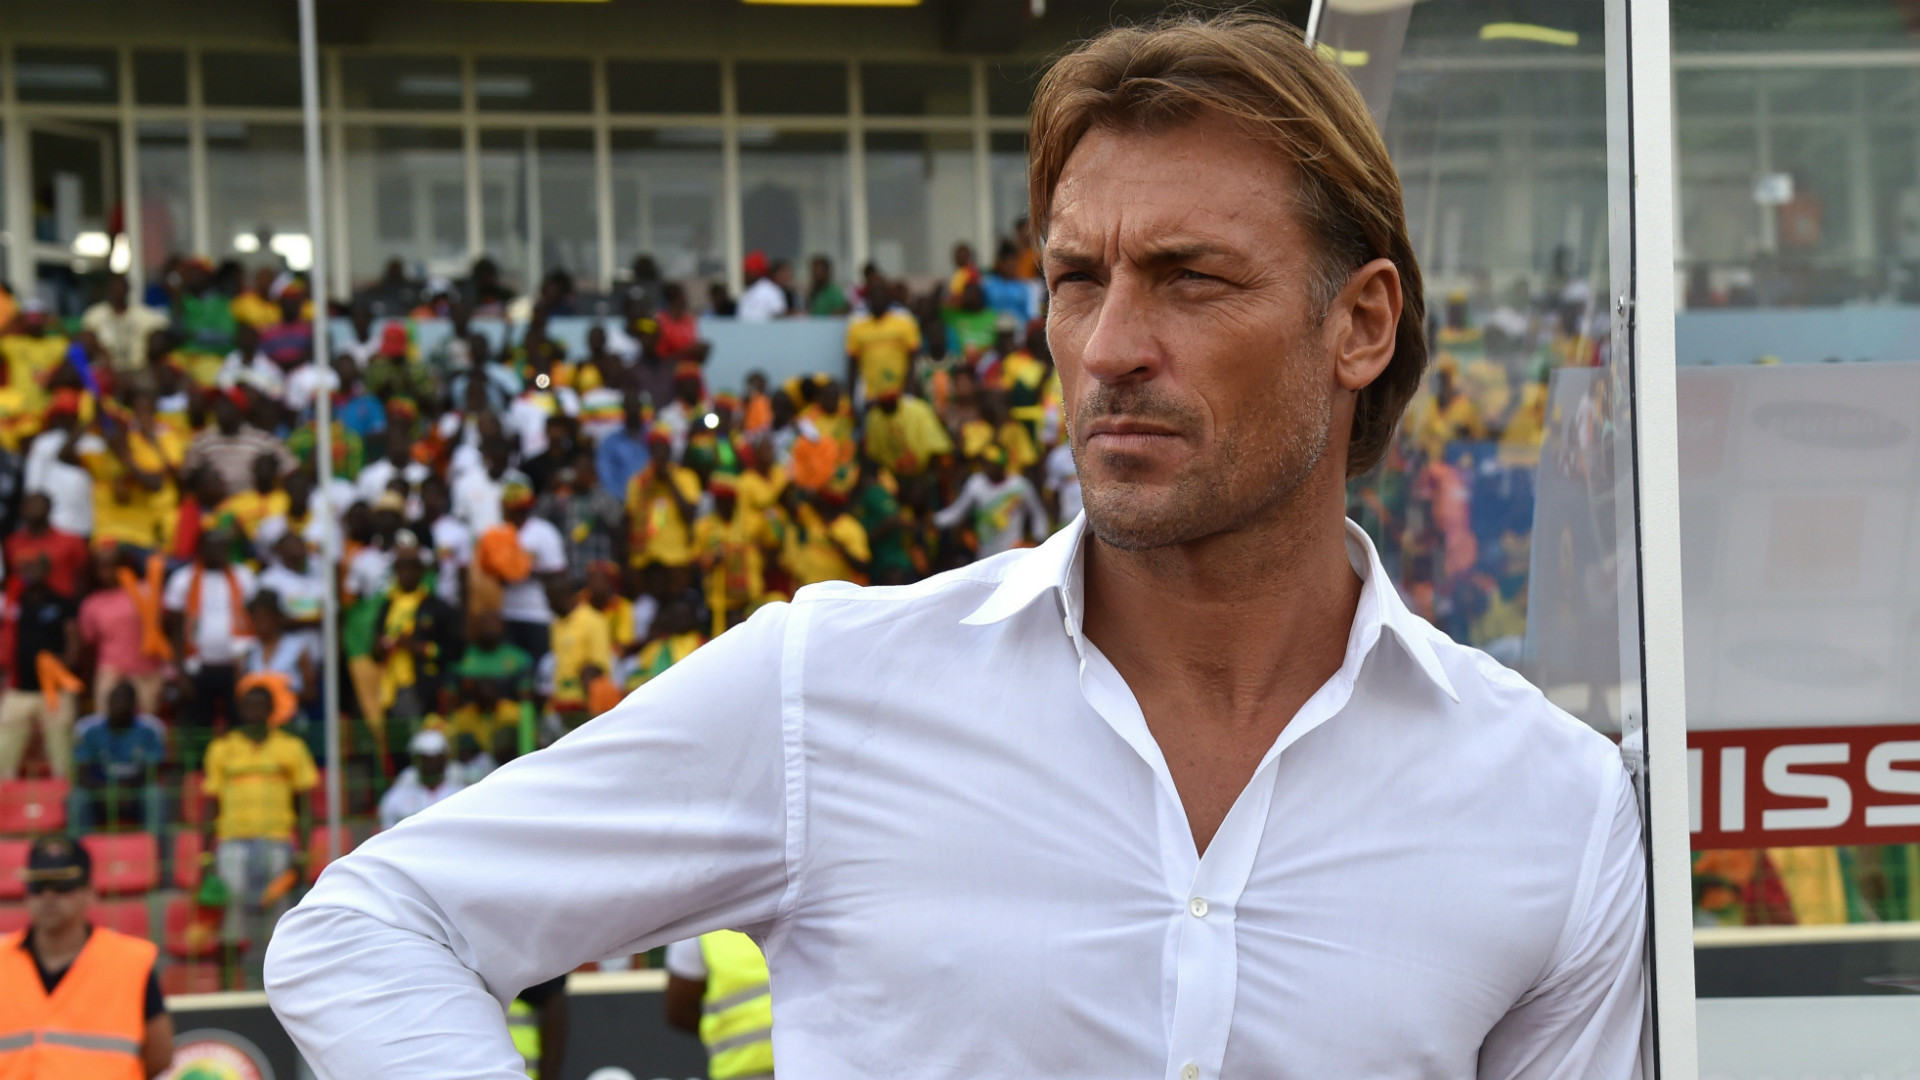 Morocco coach Herve Renard given contract extension until 2022